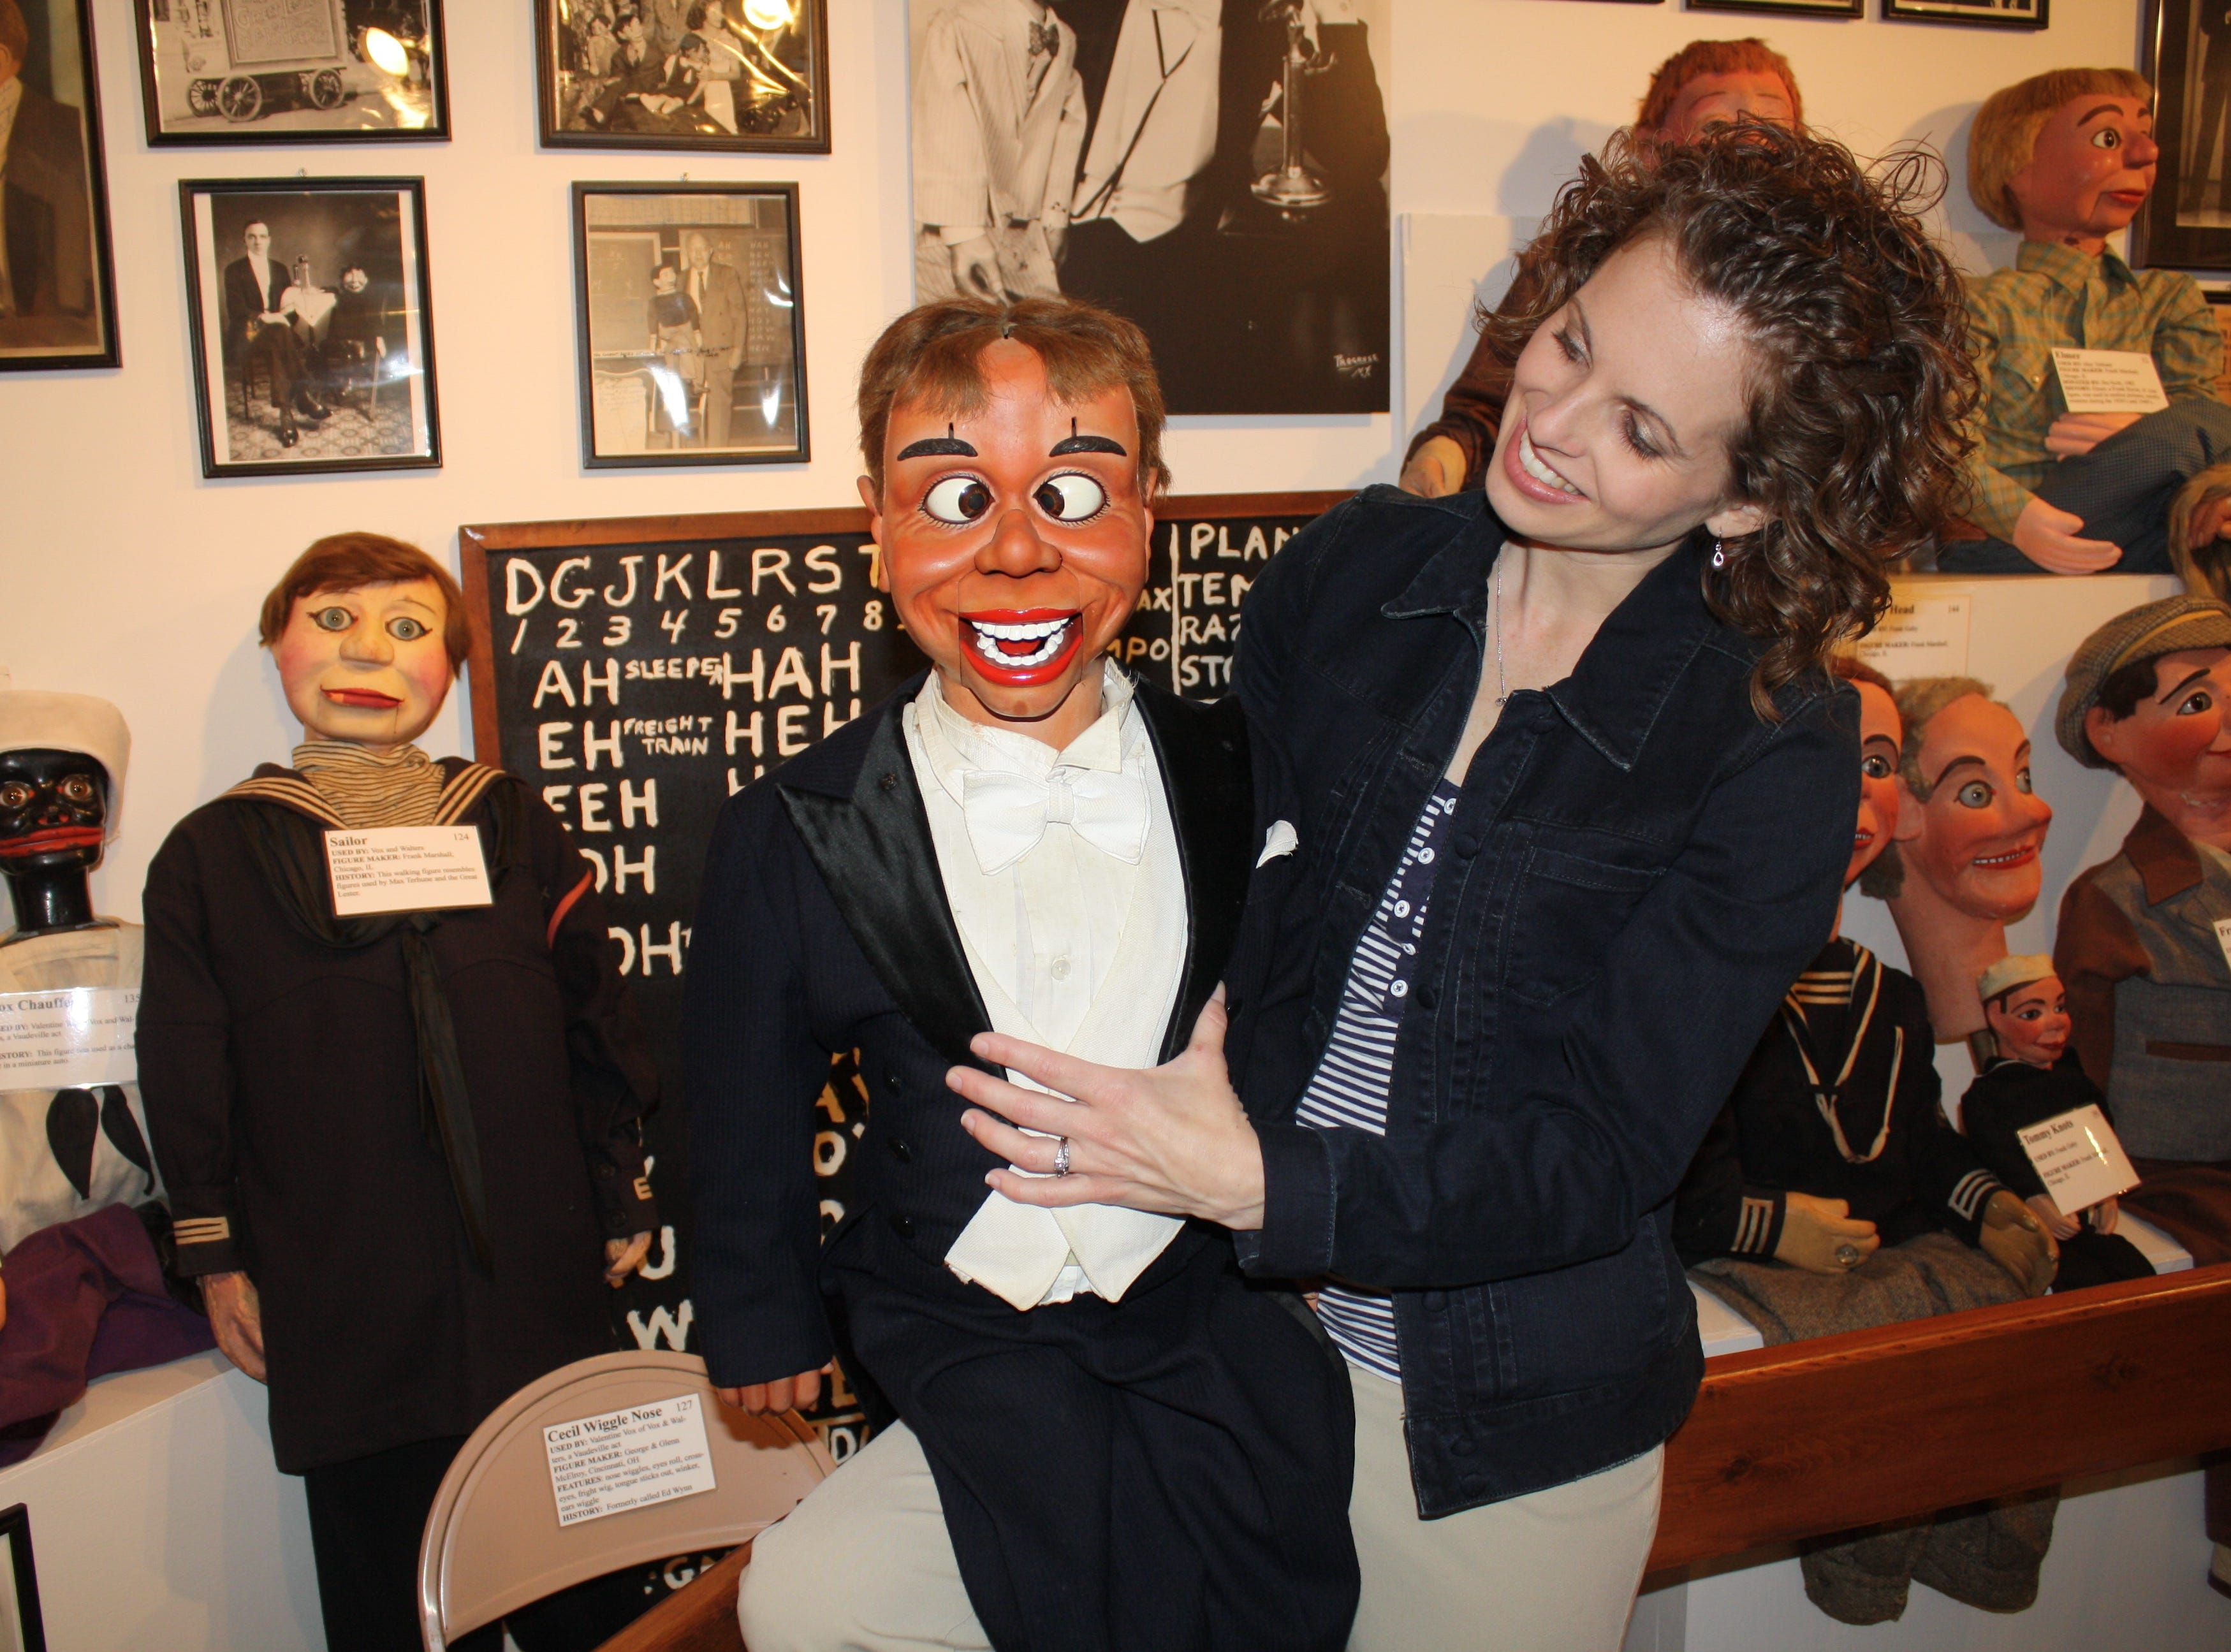 The art of ventriloquism lives on in Northern Kentucky at the Vent Haven Museum, a haven for retired ventriloquists' dummies. Jennifer Dawson, Vent Haven's former curator, sits with an intricate dummy, whose makers are from Cincinnati.